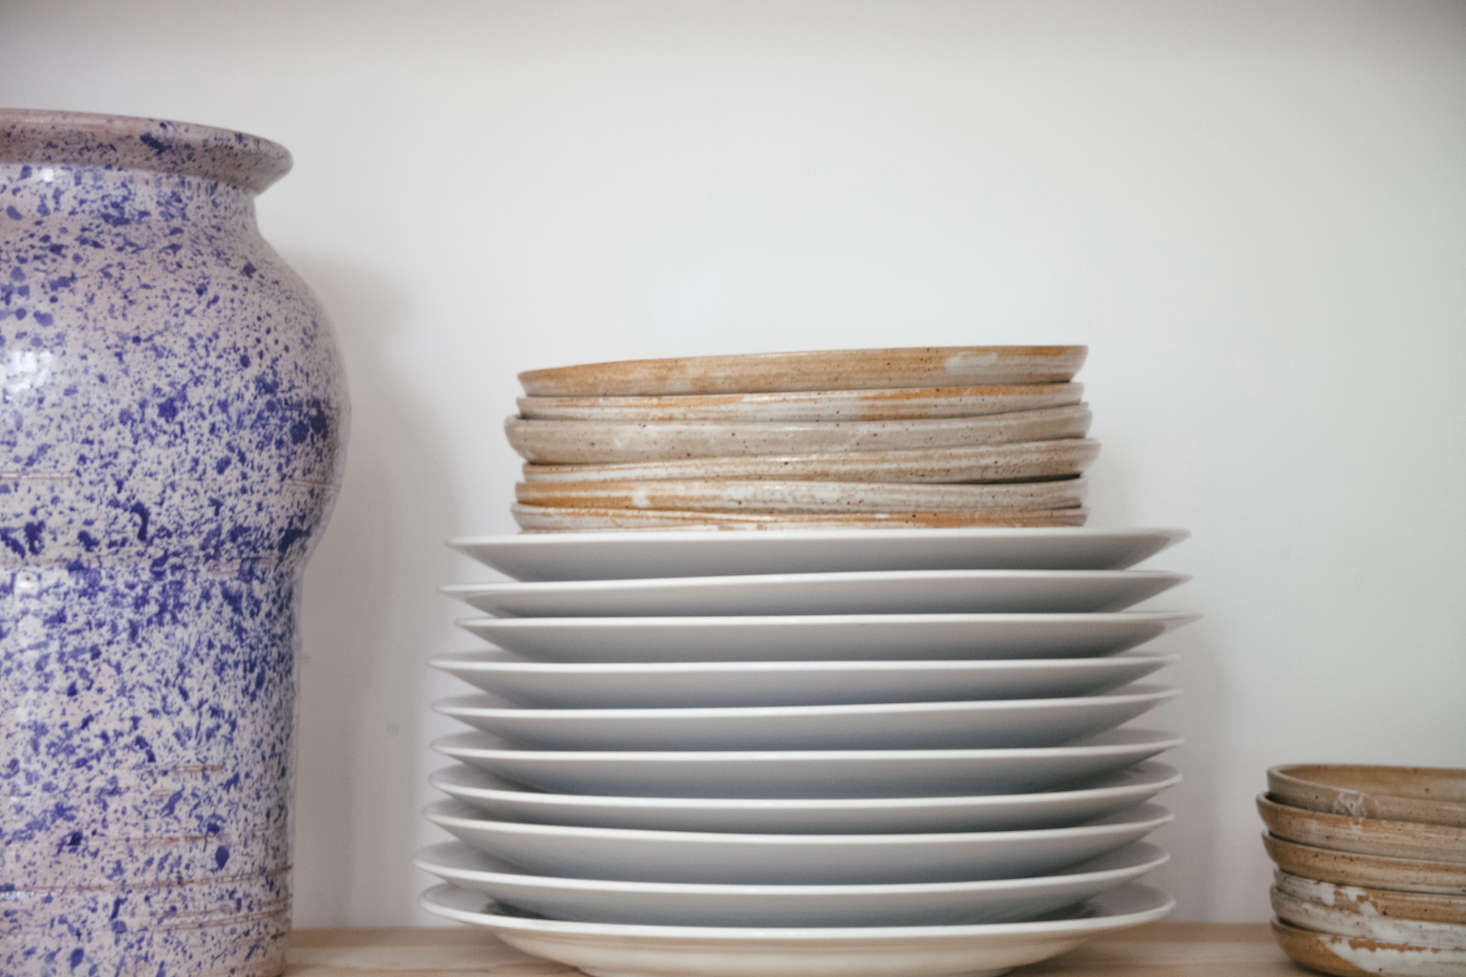 A sturdy speckled vase brought back from Philadelphia and a stack of ordinary white plates mixed with ceramic dishes.